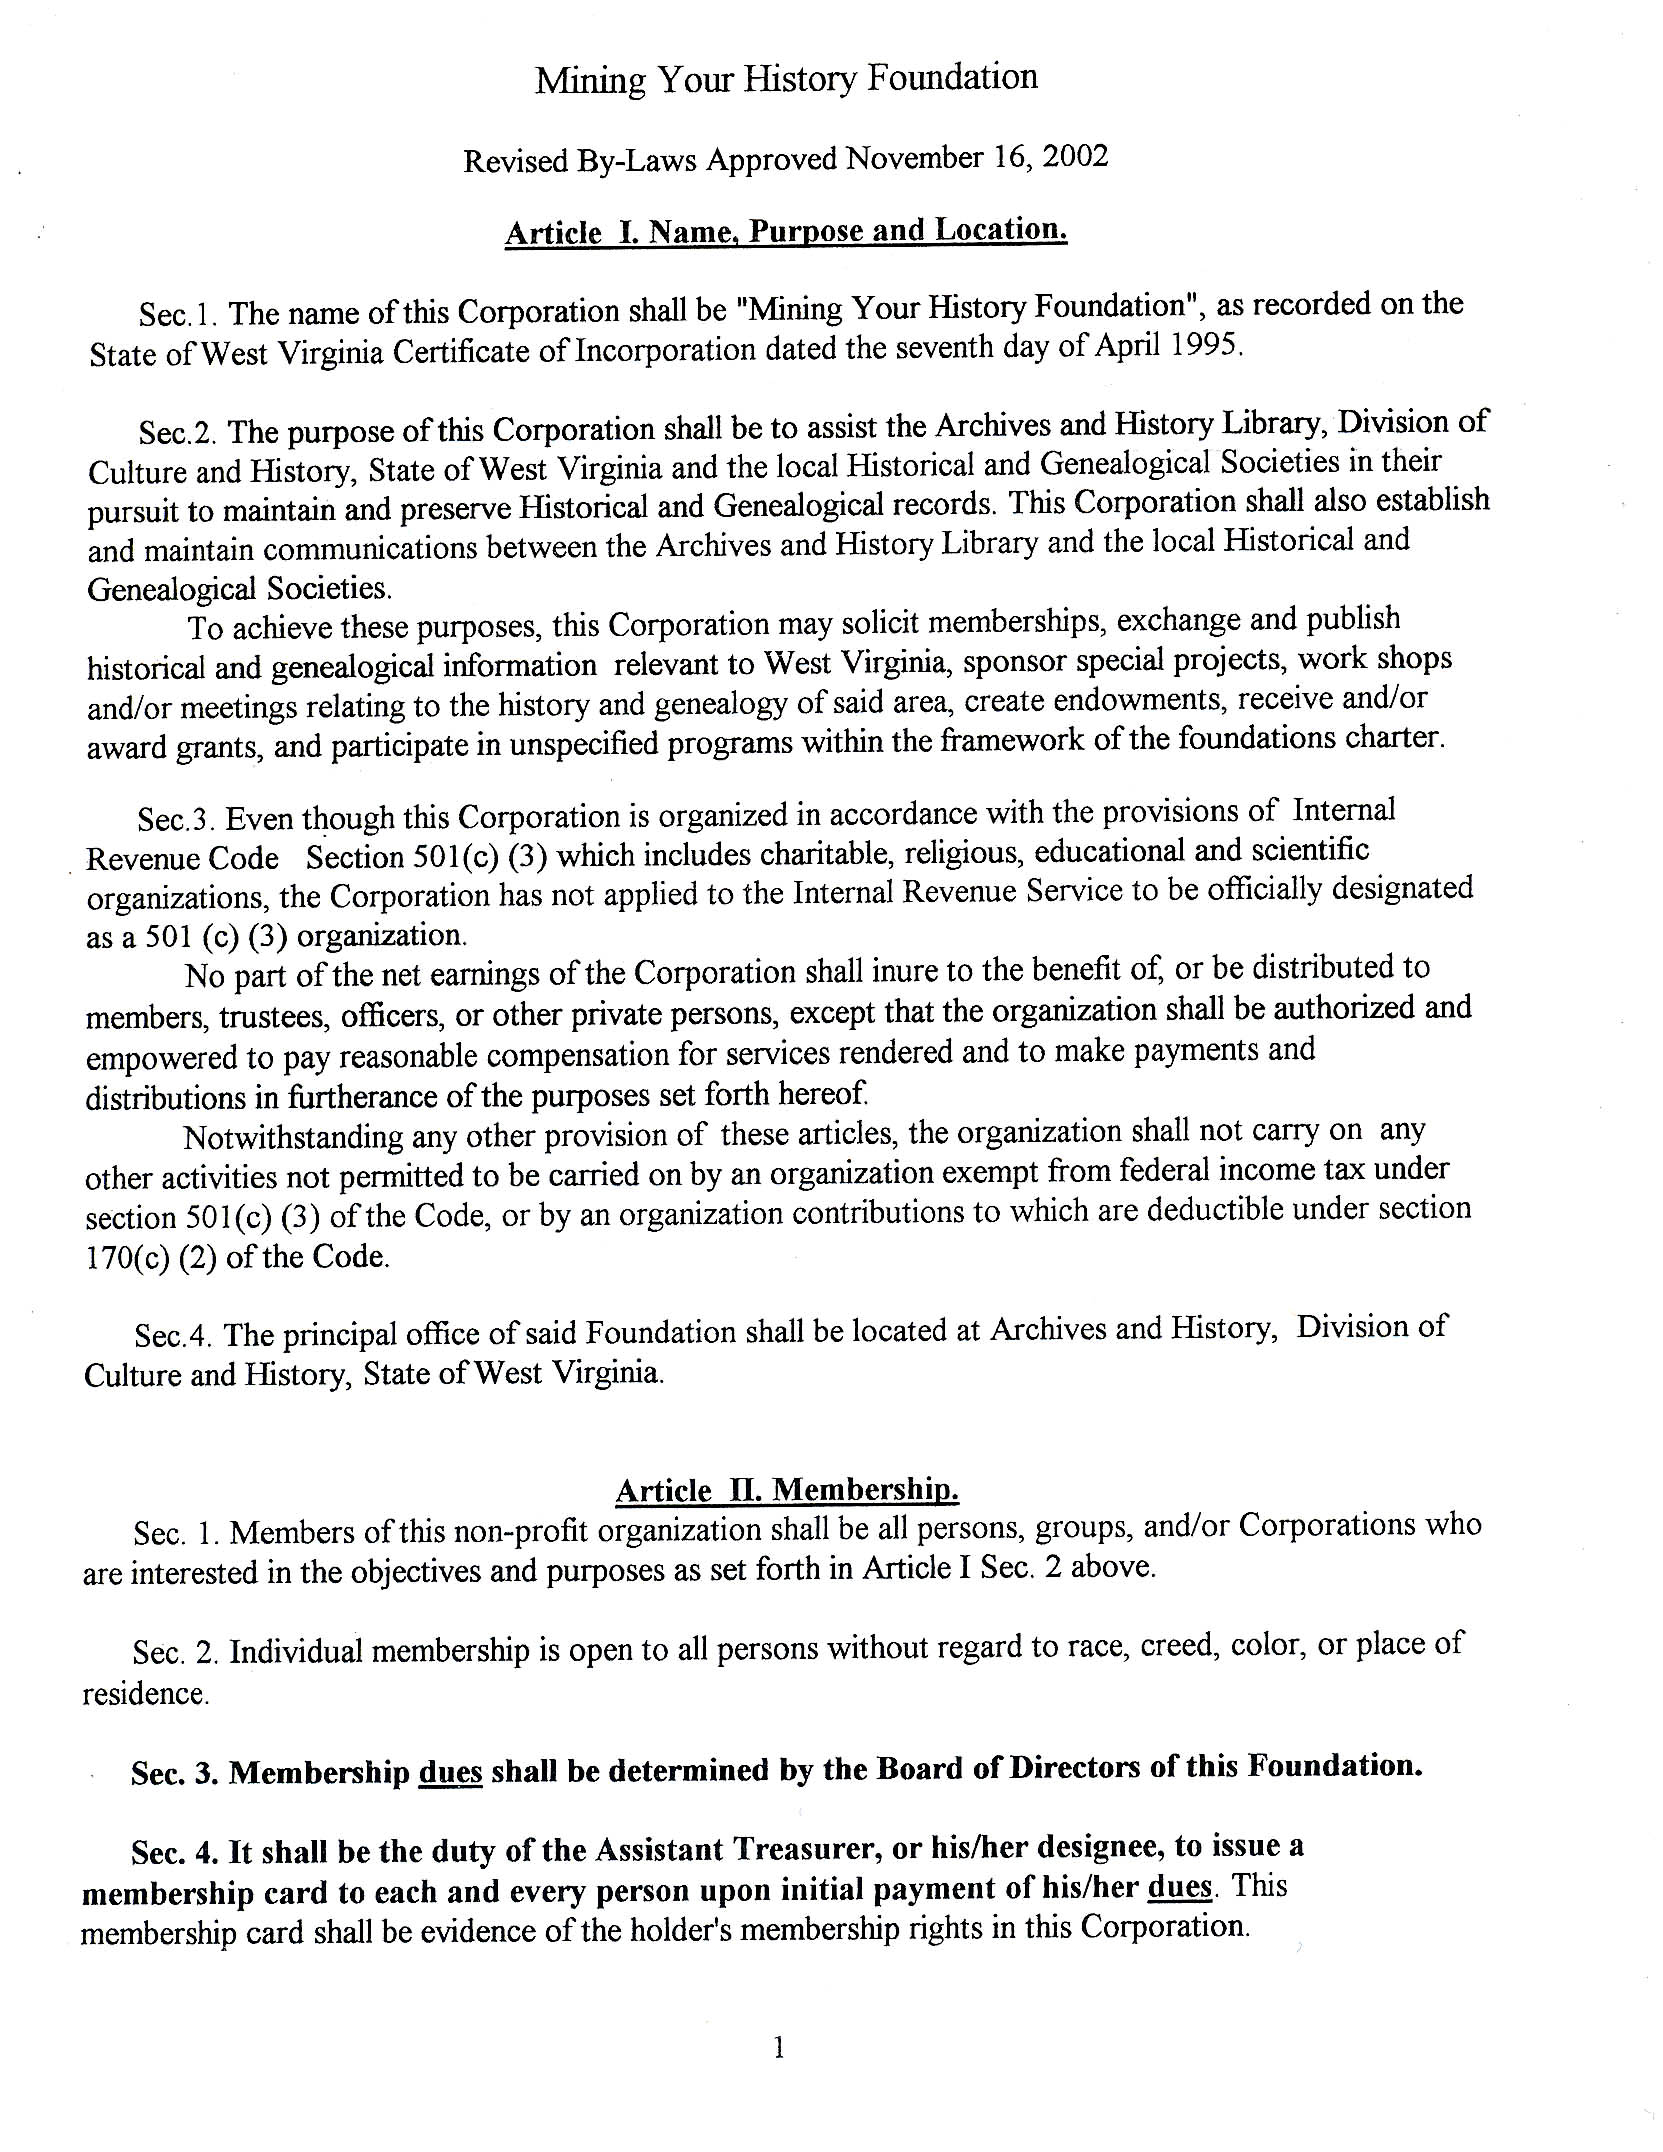 By Laws Page 1